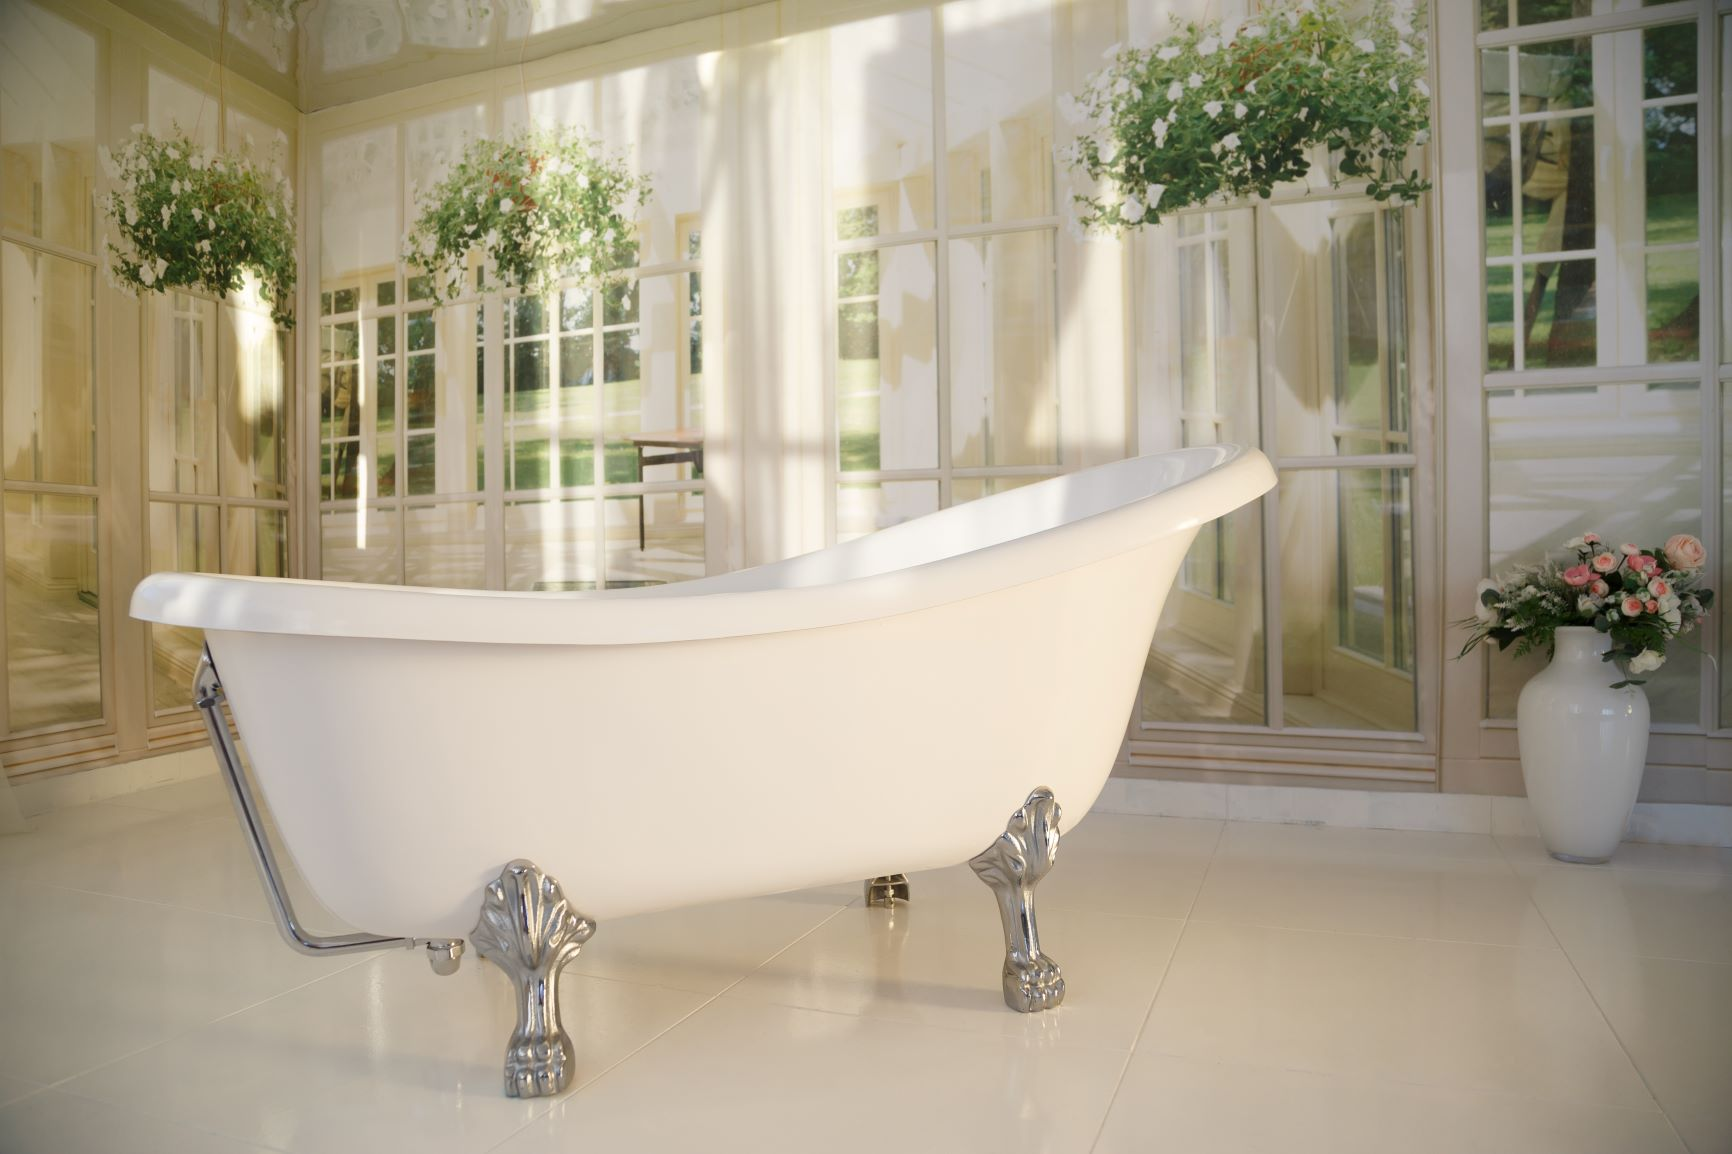 THE EVOLUTION OF CLAWFOOT TUBS